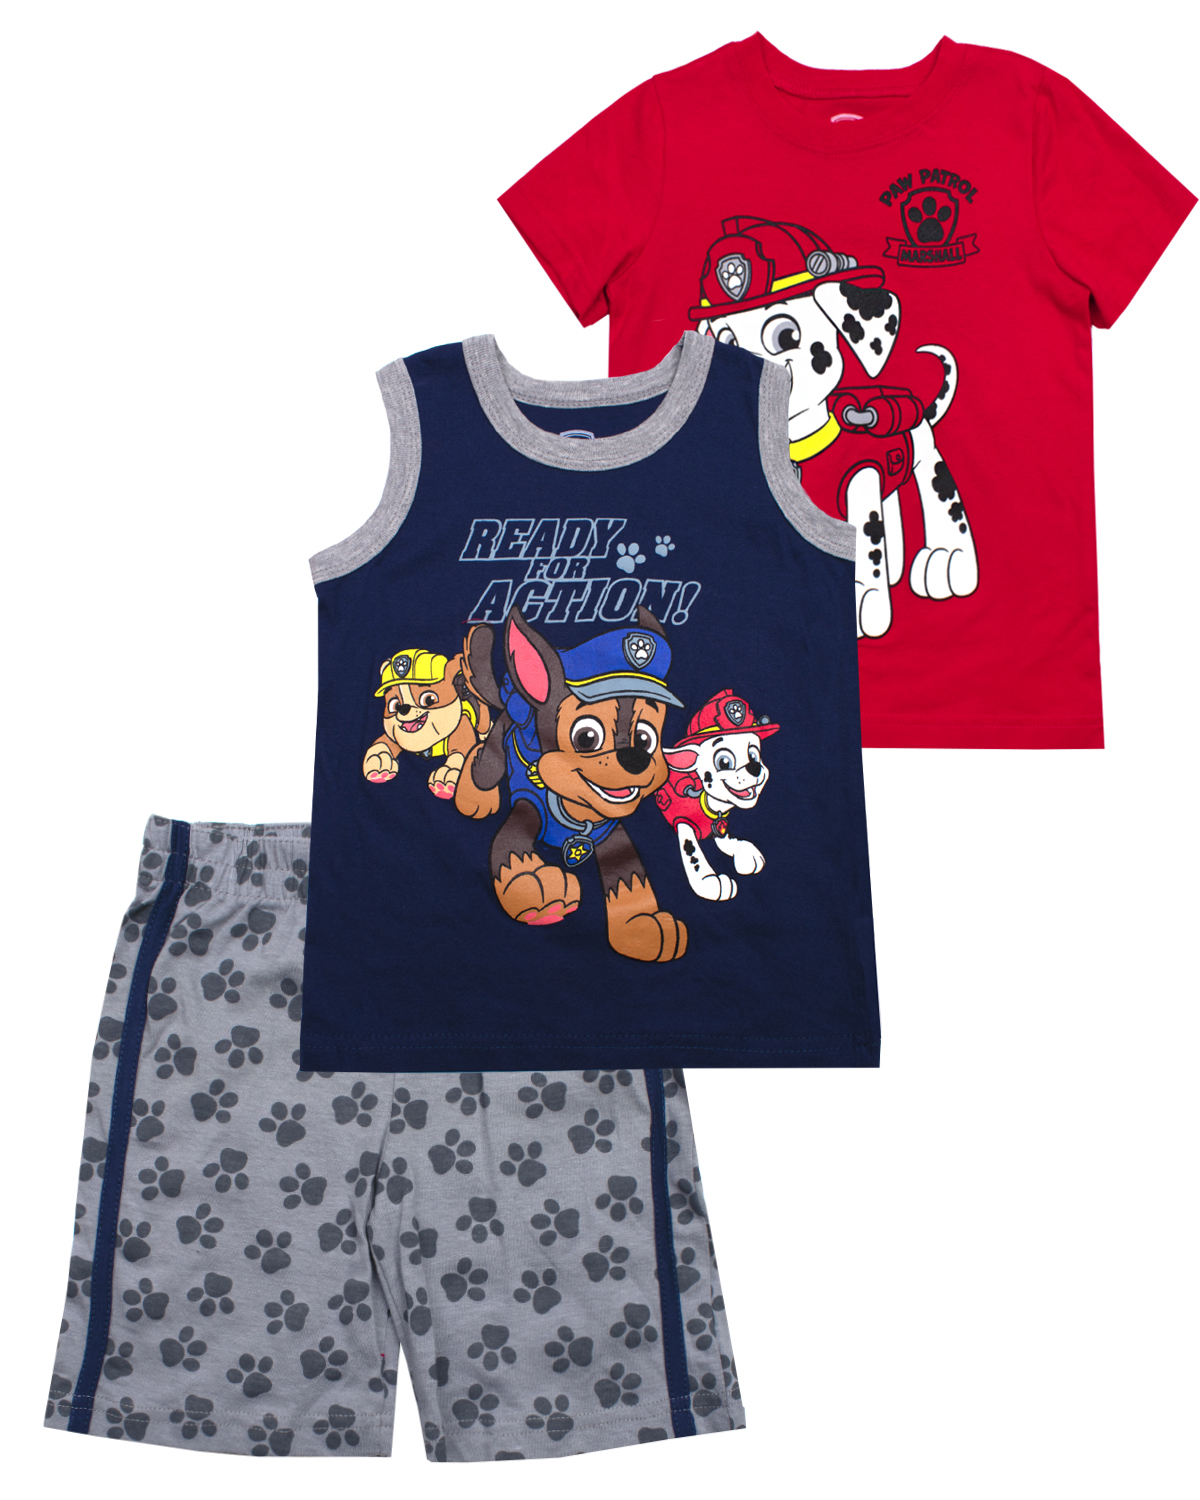 Muscle Tank, tee, and Shorts, 3-Piece Outfit Set (Little Boys)